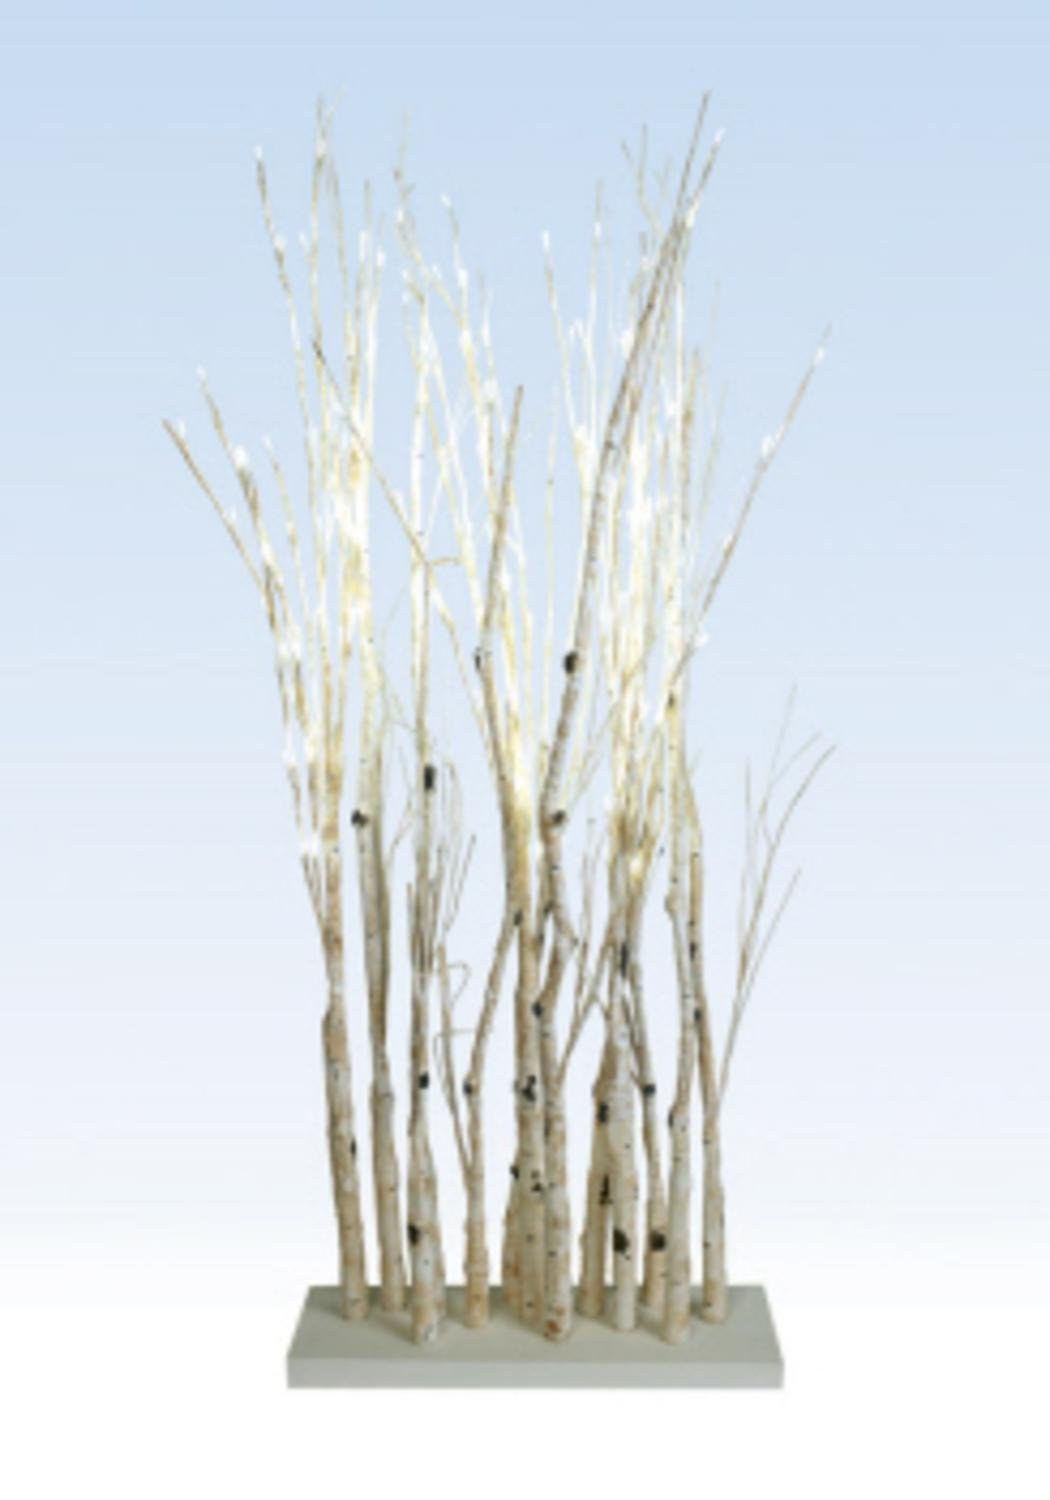 48'' LED Lighted Enchanted Garden Standing Birch Branches Decoration - Warm White